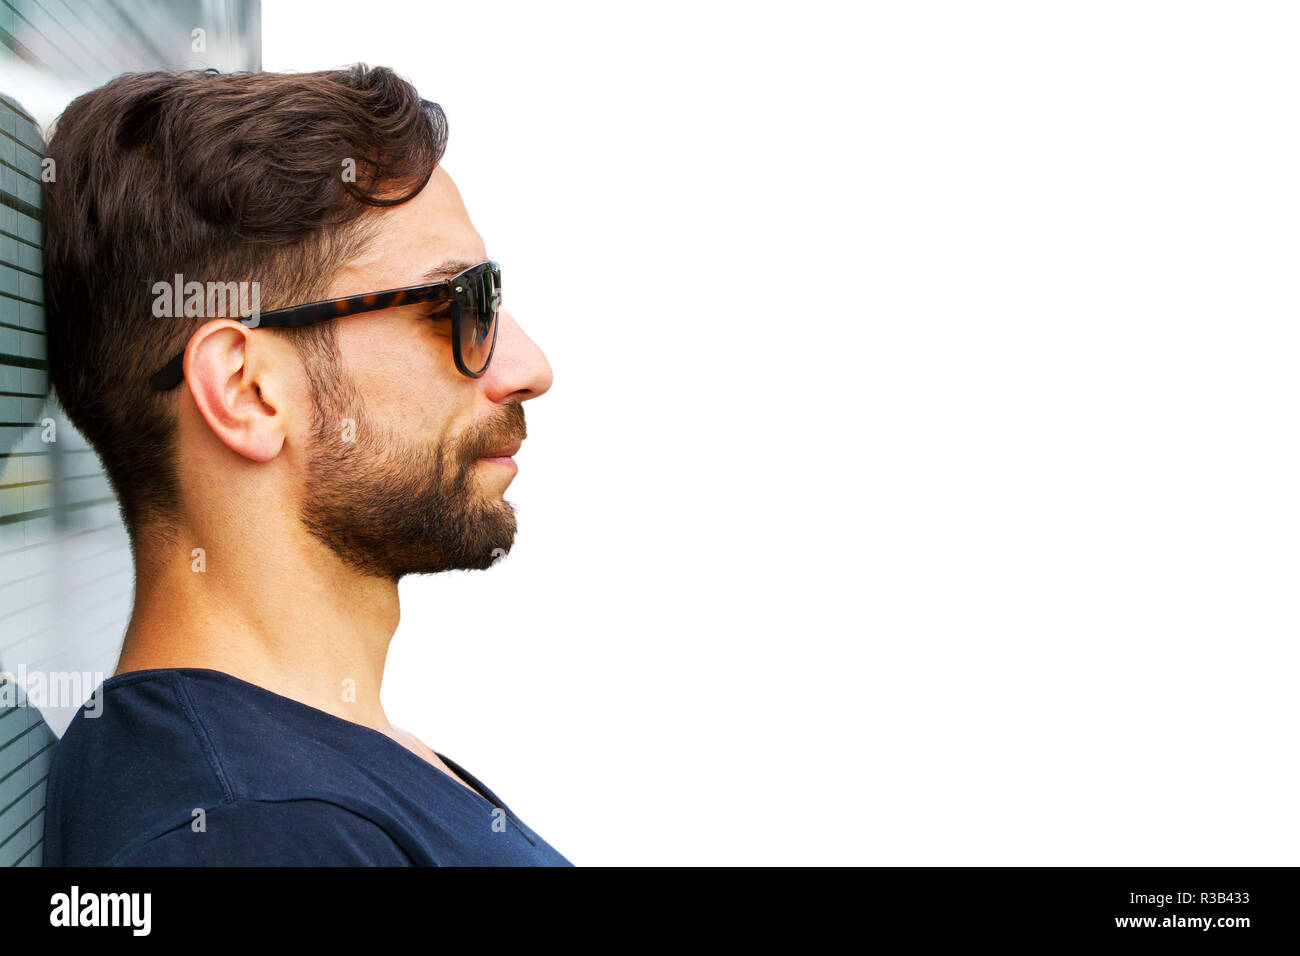 young man with sunglasses Stock Photo